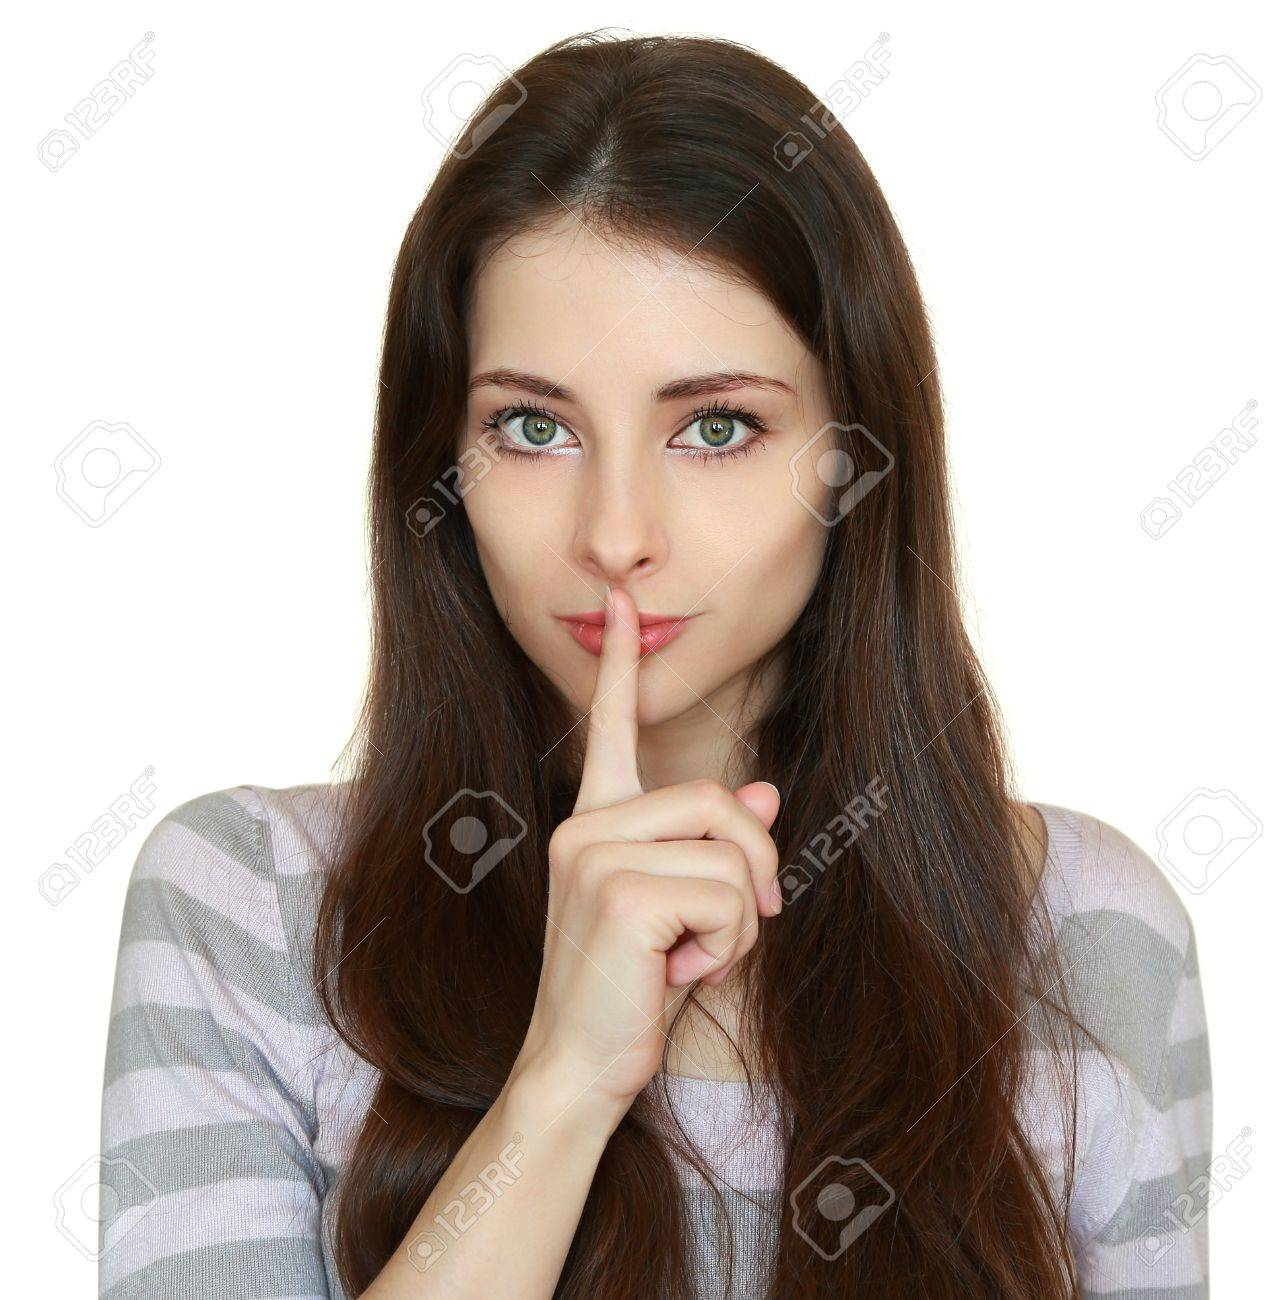 Beautiful woman showing silent sign and holding finger over lips isolated on white background  Closeup portrait of long hair girl Stock Photo - 18268504